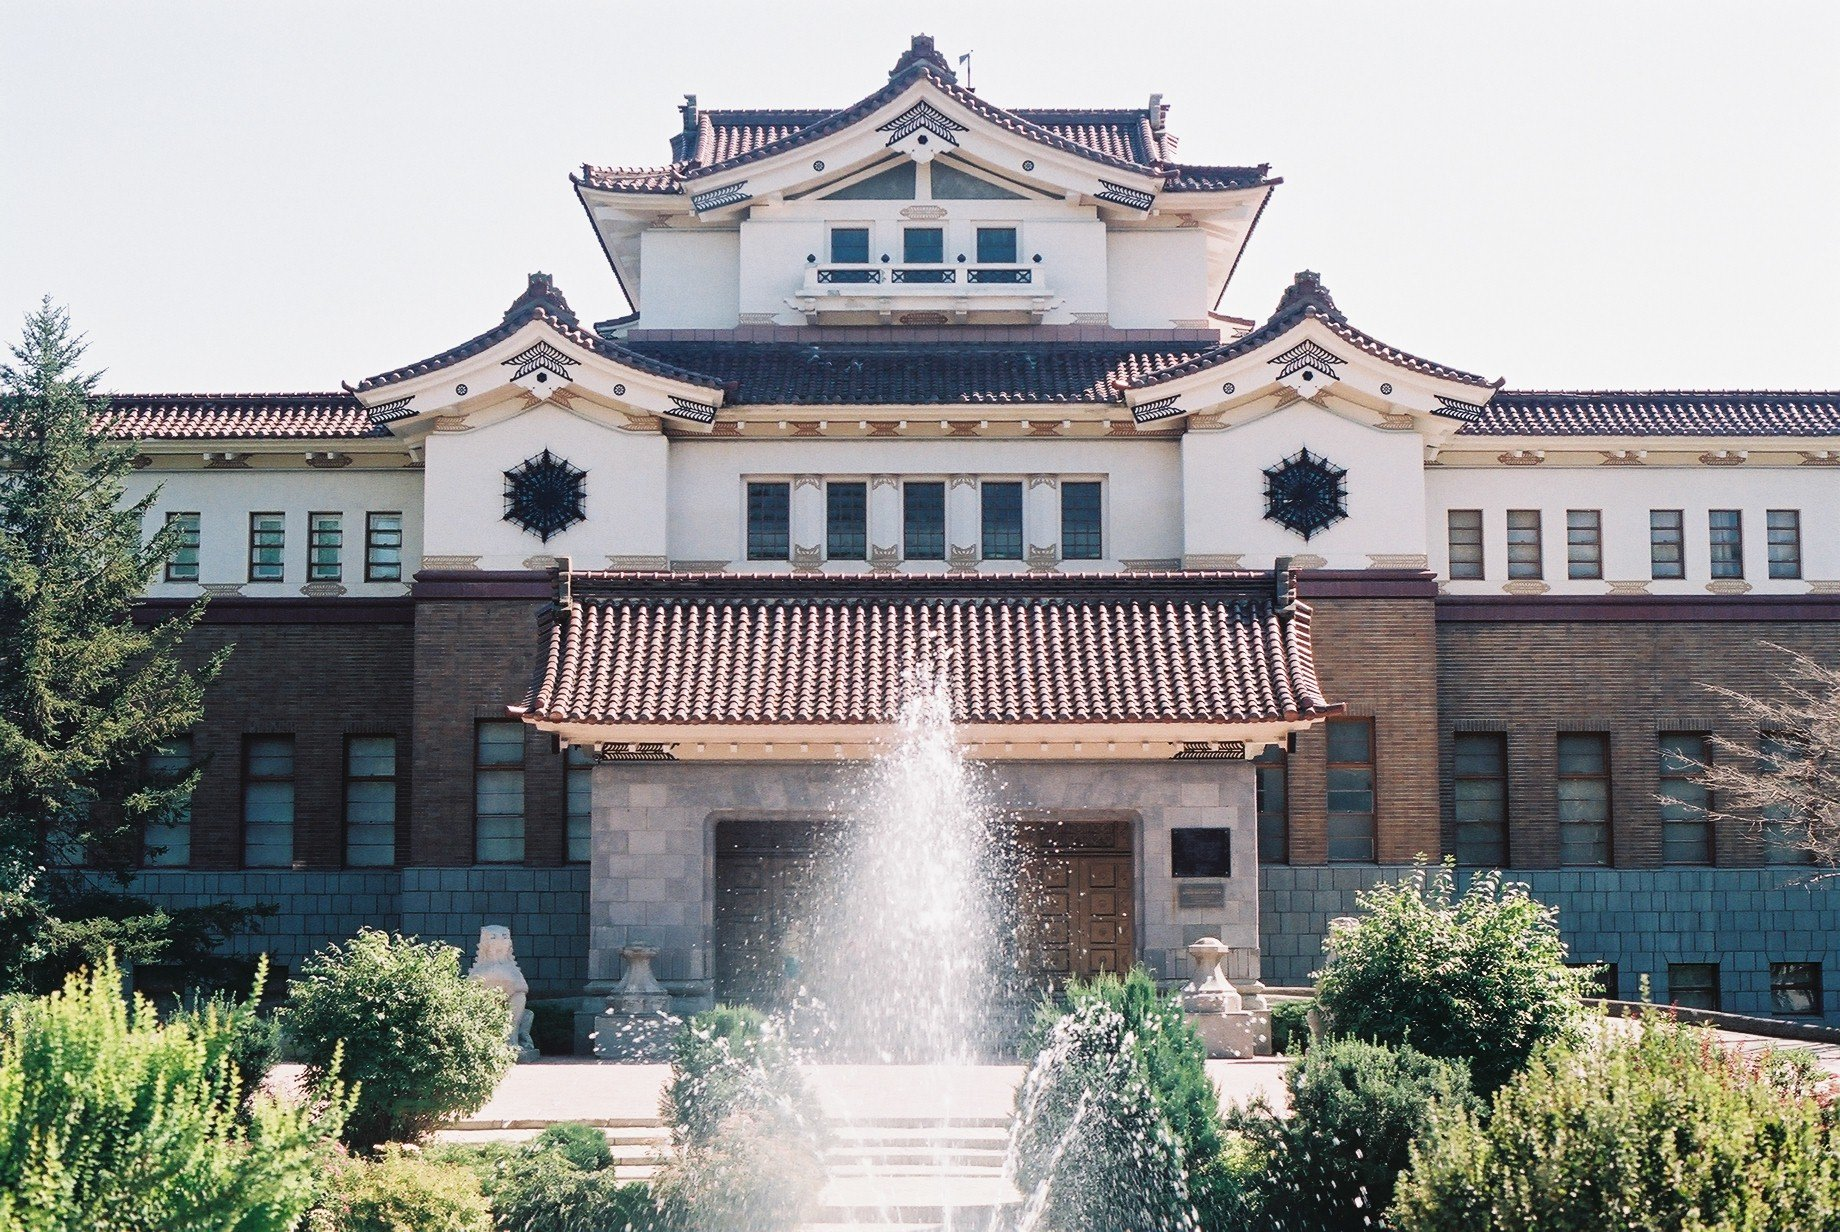 Learn about Sakhalin's history at a Japanese governor's former home